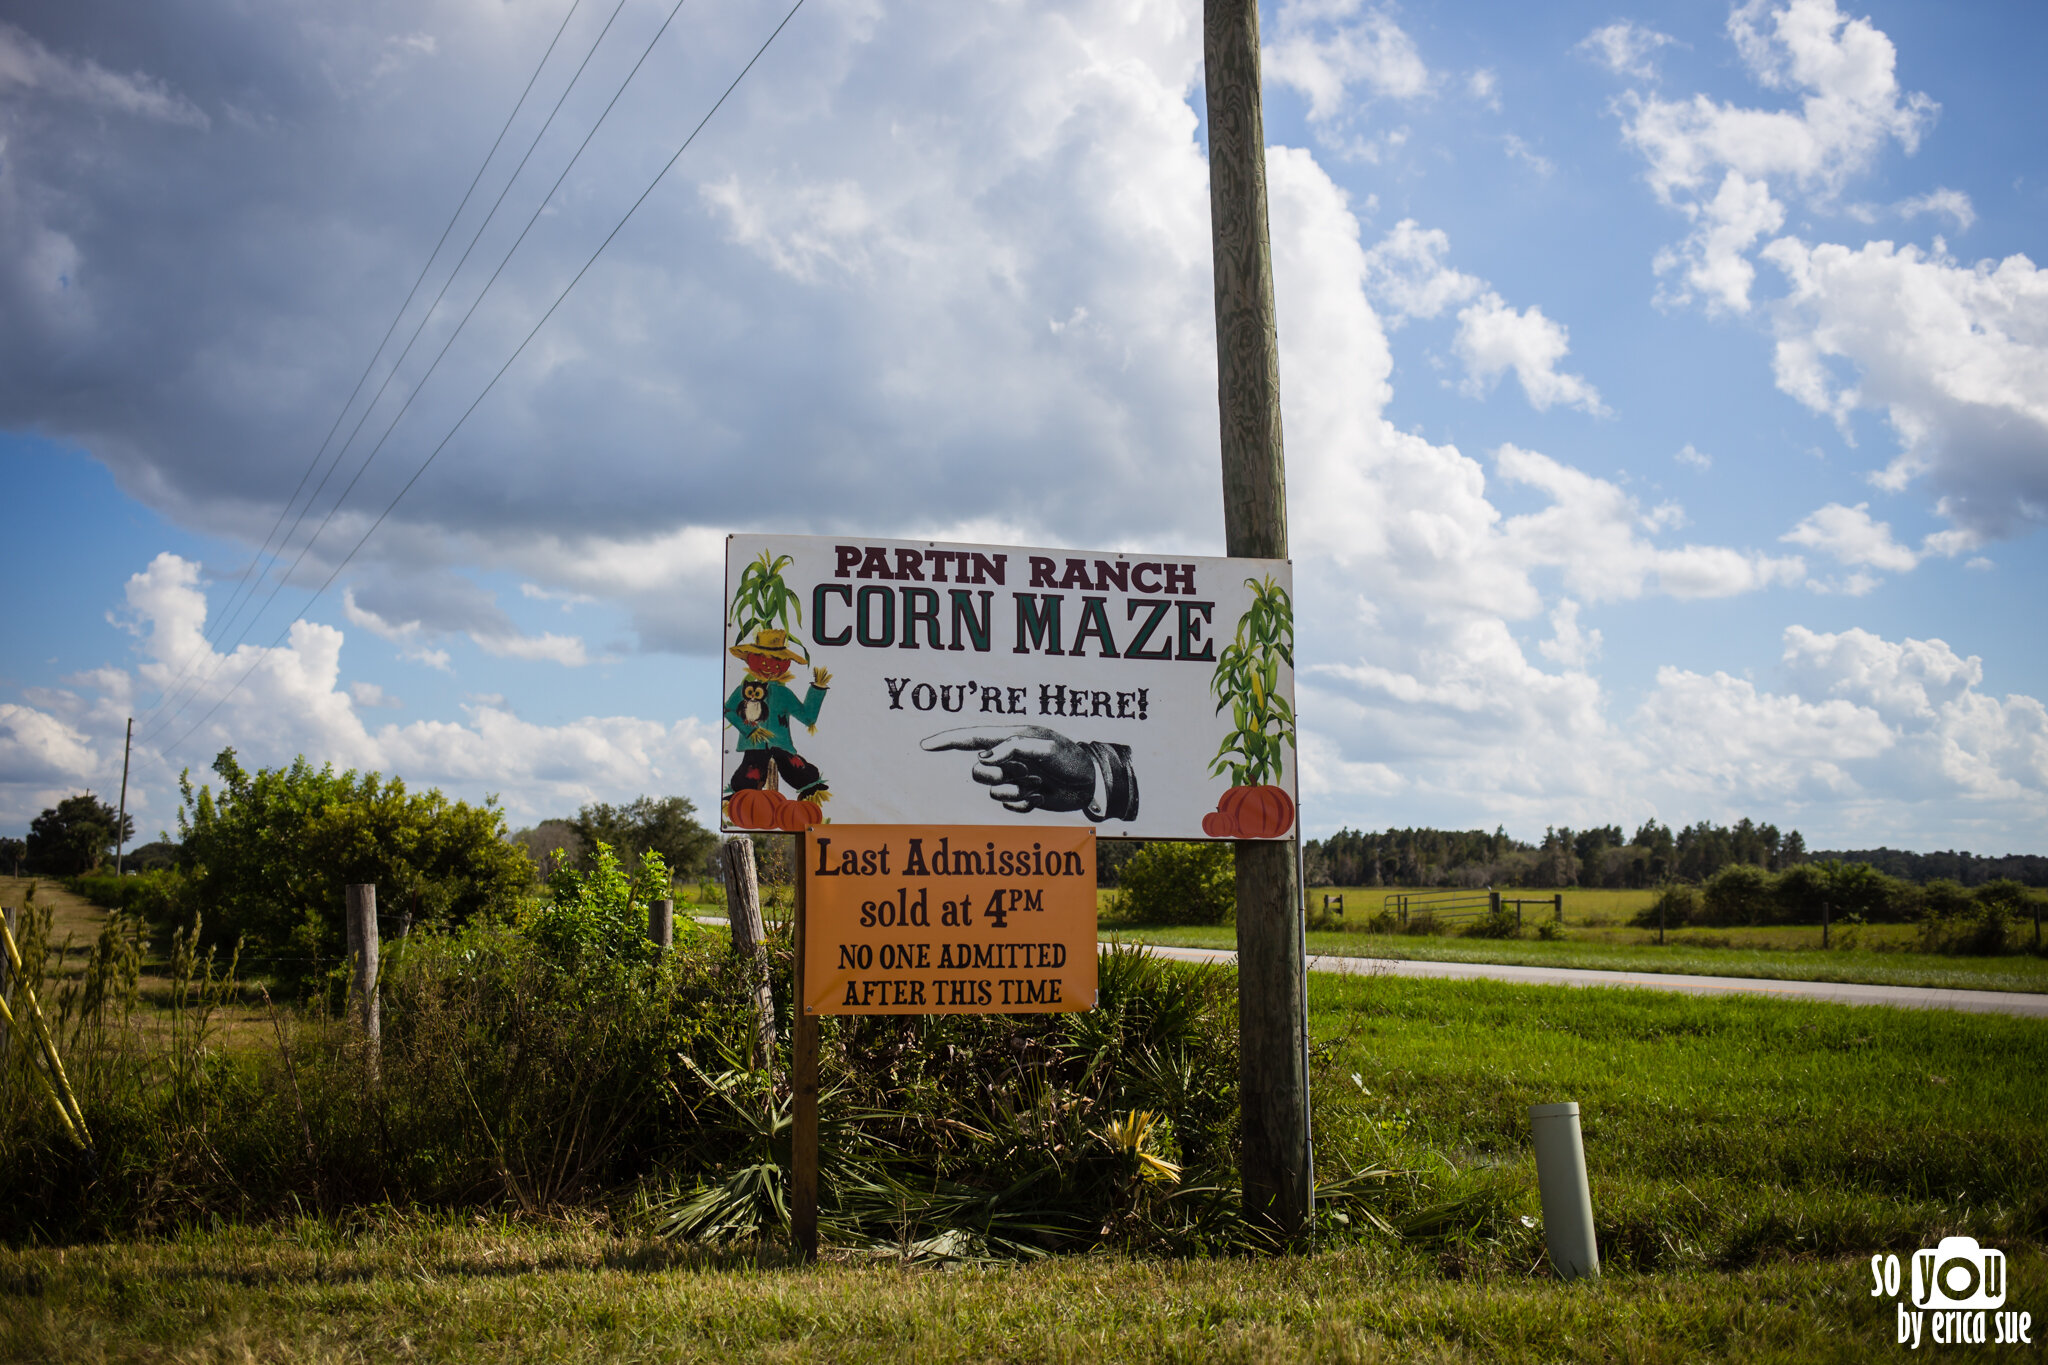 so-you-by-erica-sue-disney-photography-family-mickey-not-so-scary-partin-ranch-corn-maze-old-town-orlando-4396.jpg